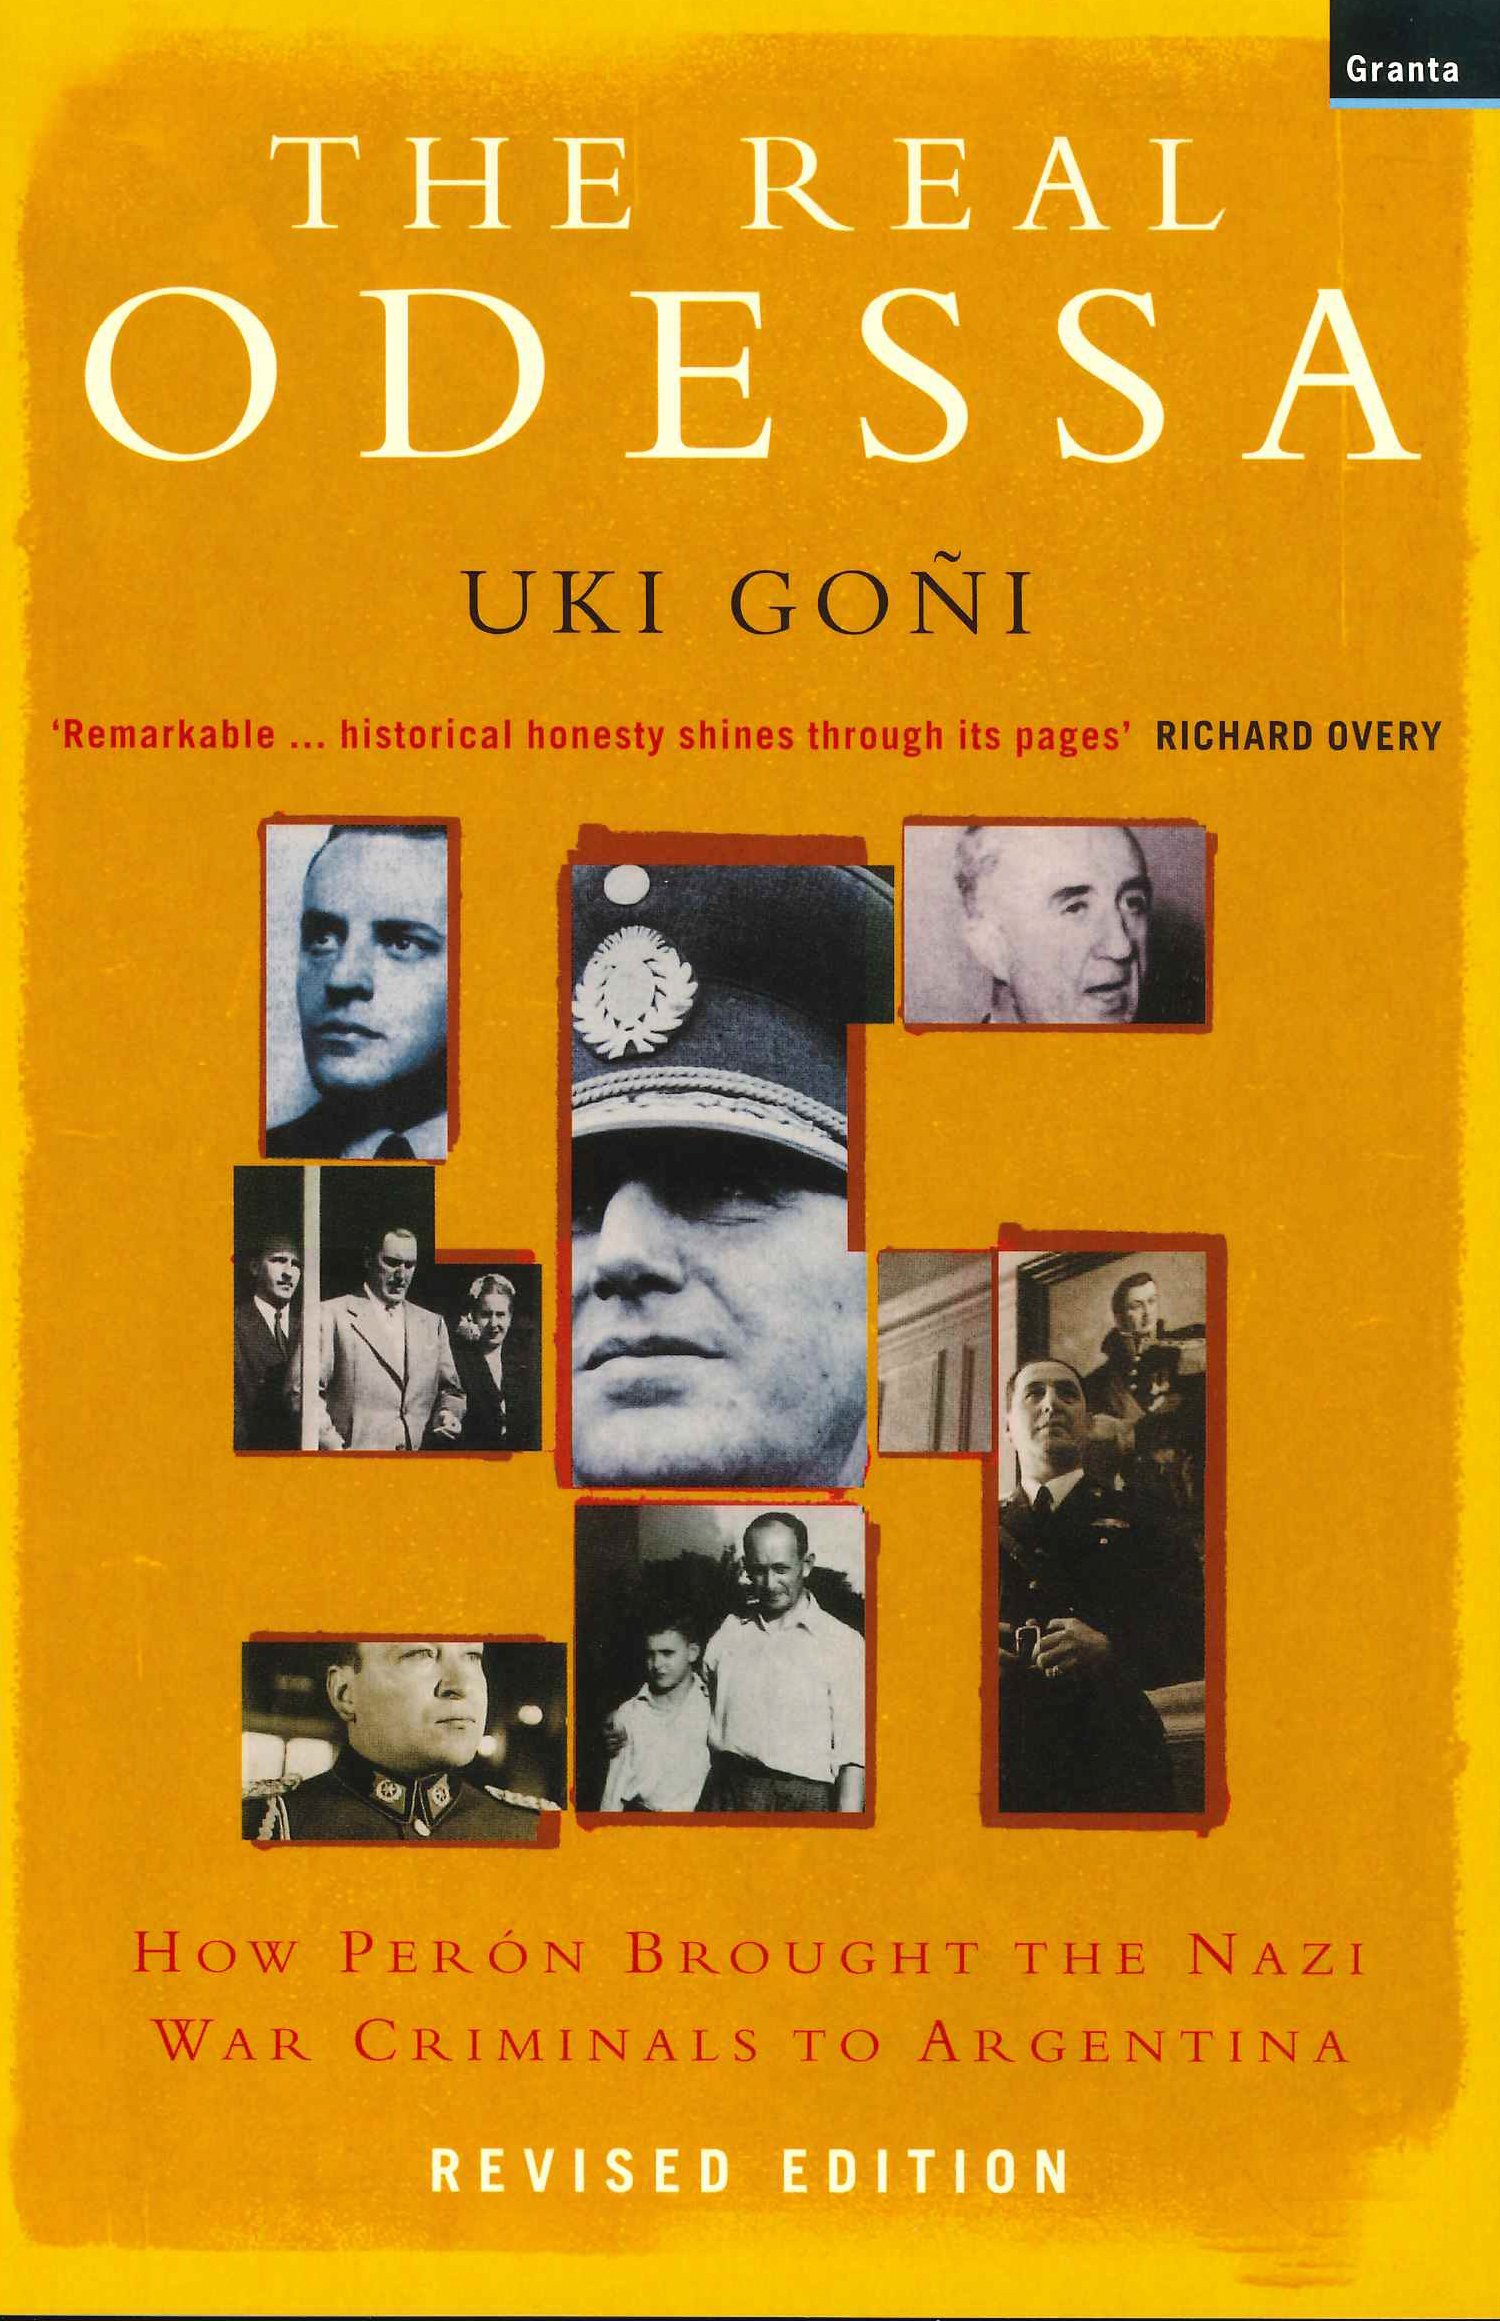 Real Odessa: How Peron Brought the Nazi War Criminals to Argentina: Amazon.es: Uki Goni: Libros en idiomas extranjeros